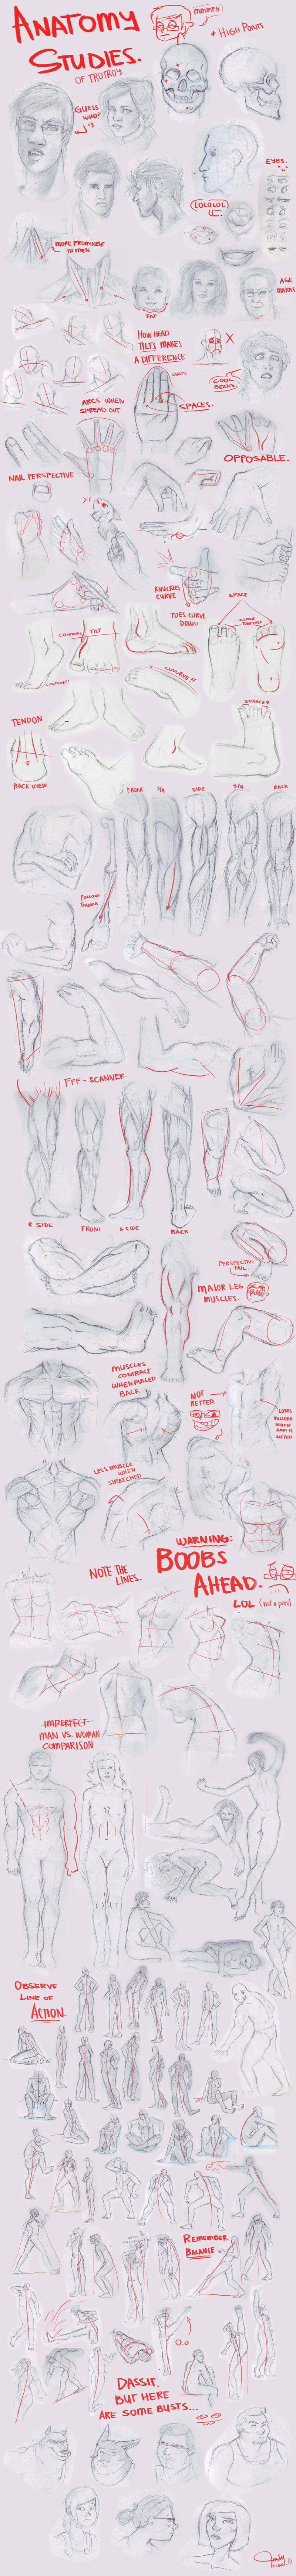 Anatomy Studies by trisketched